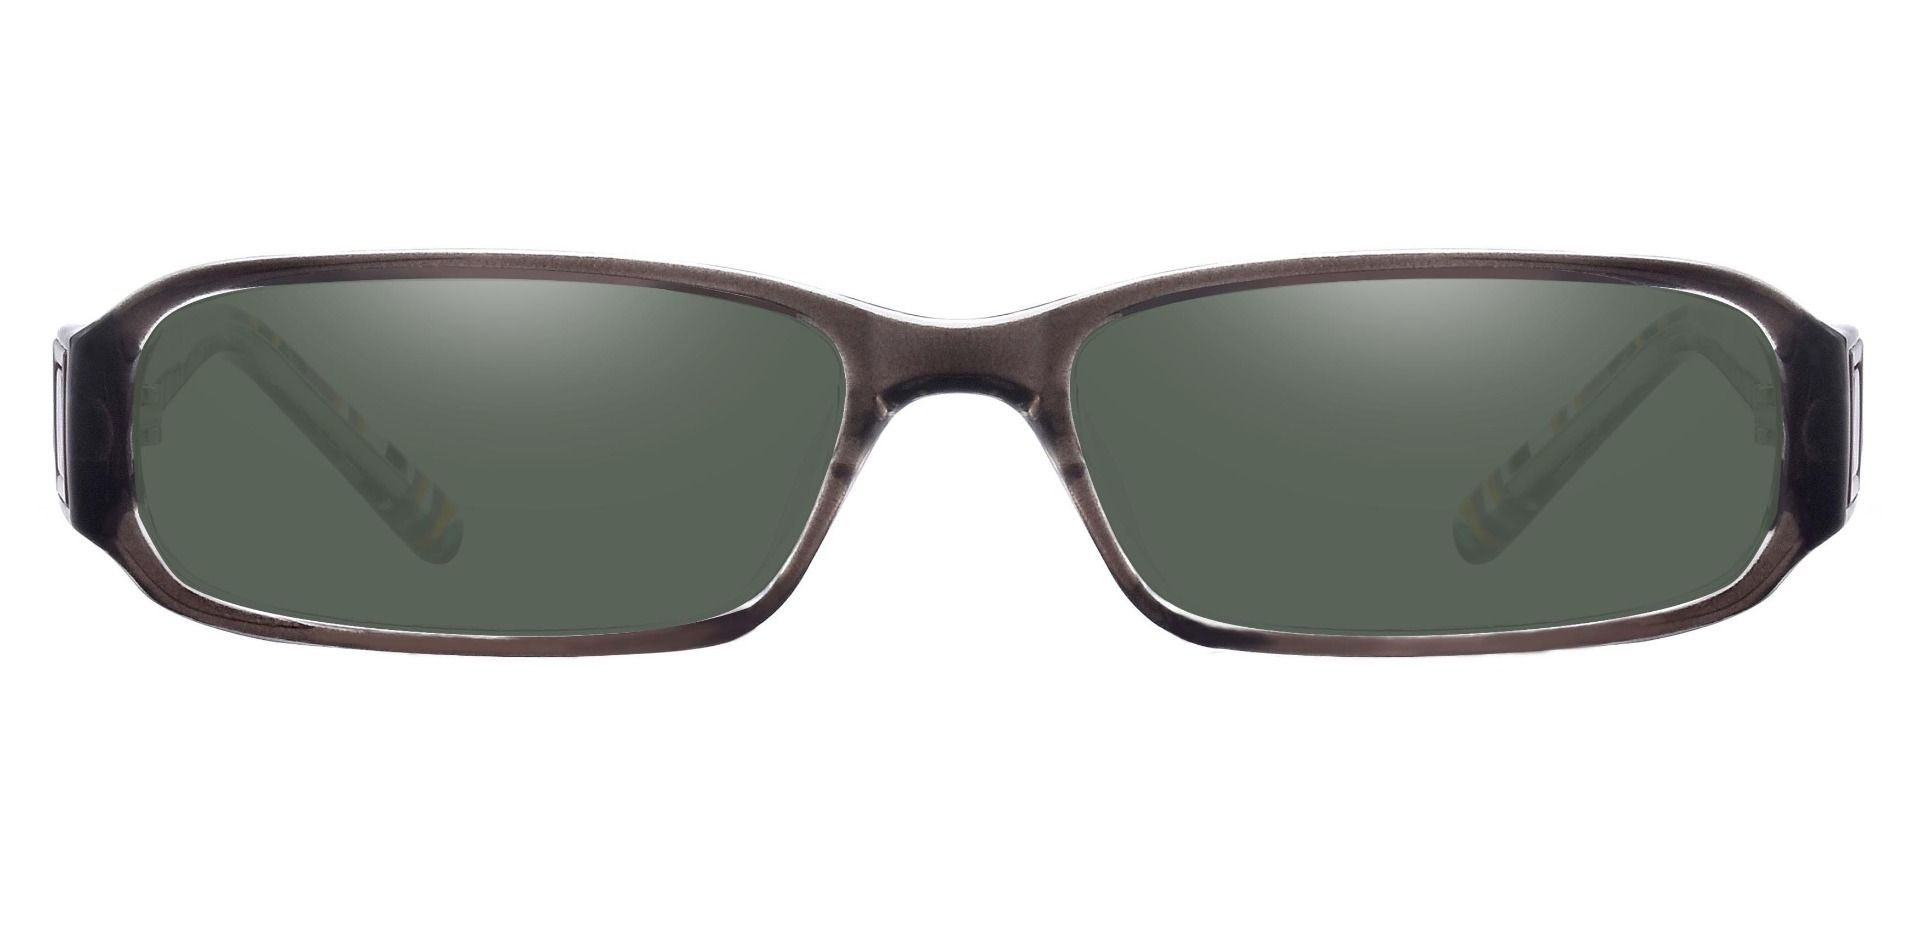 Coral Rectangle Single Vision Sunglasses -  Gray Frame With Green Lenses